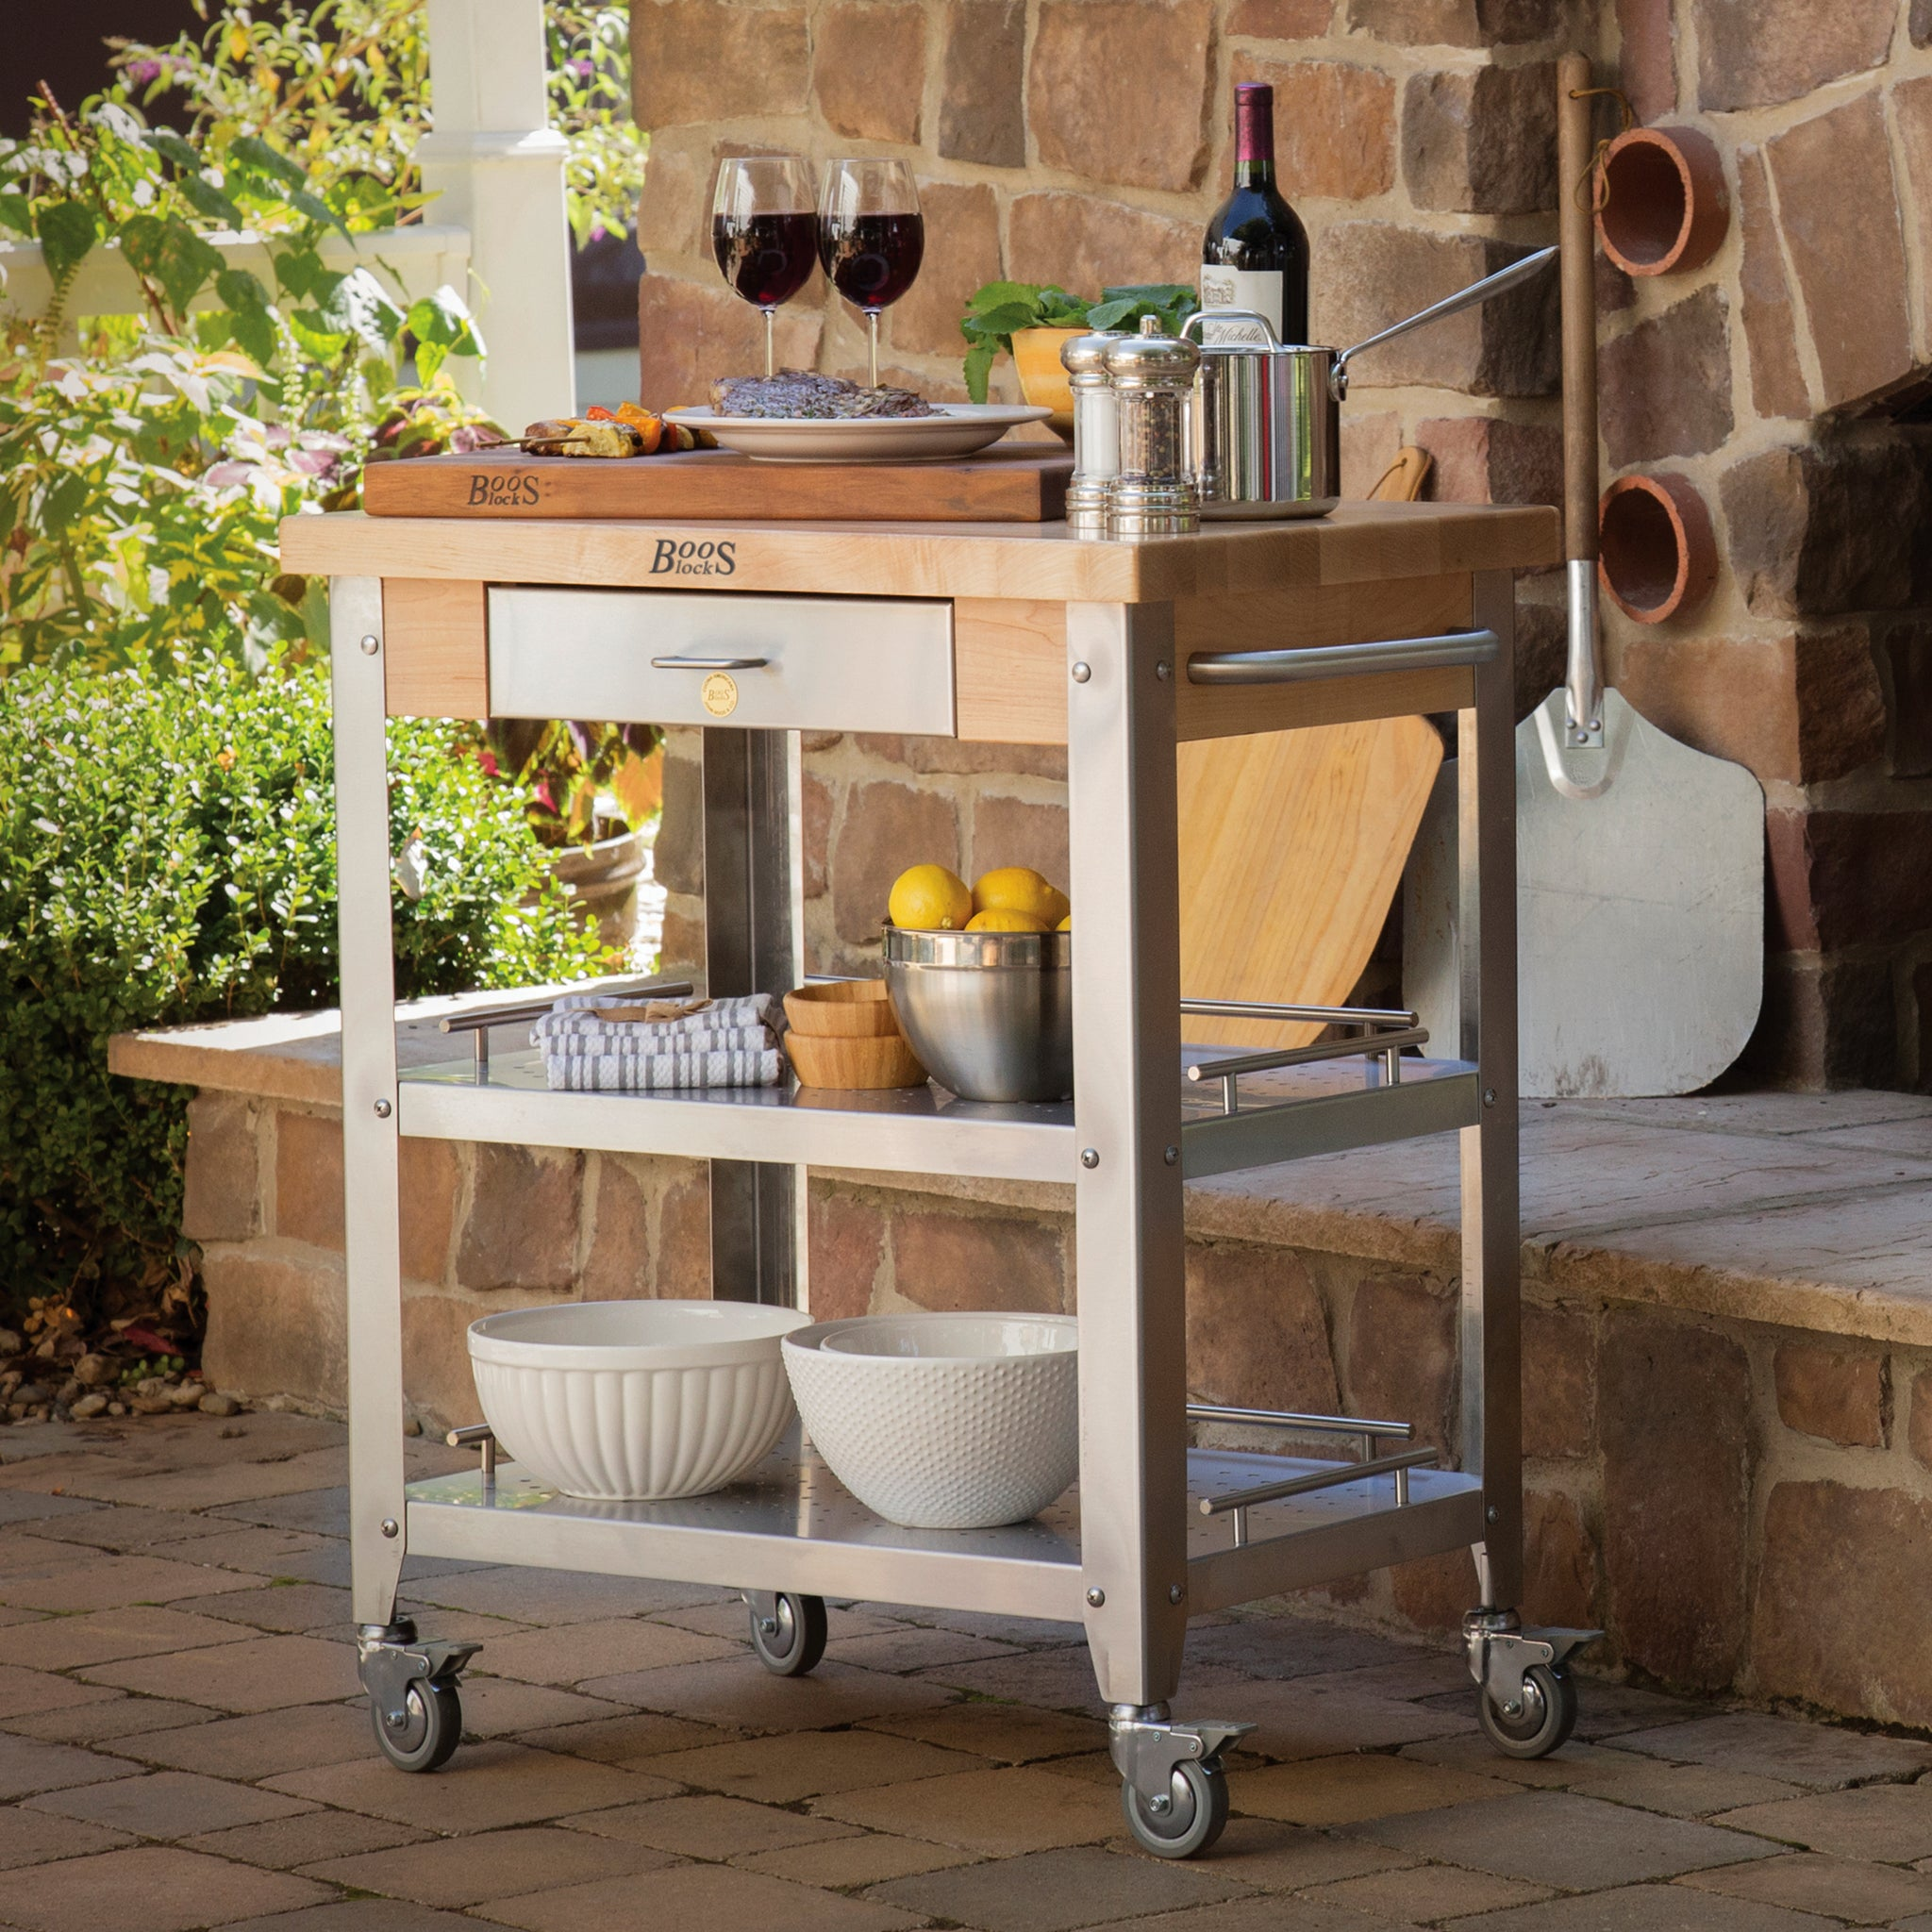 "Cucina 4 X 4 cucina elegante kitchen cart 30-3/4"" x 20"""